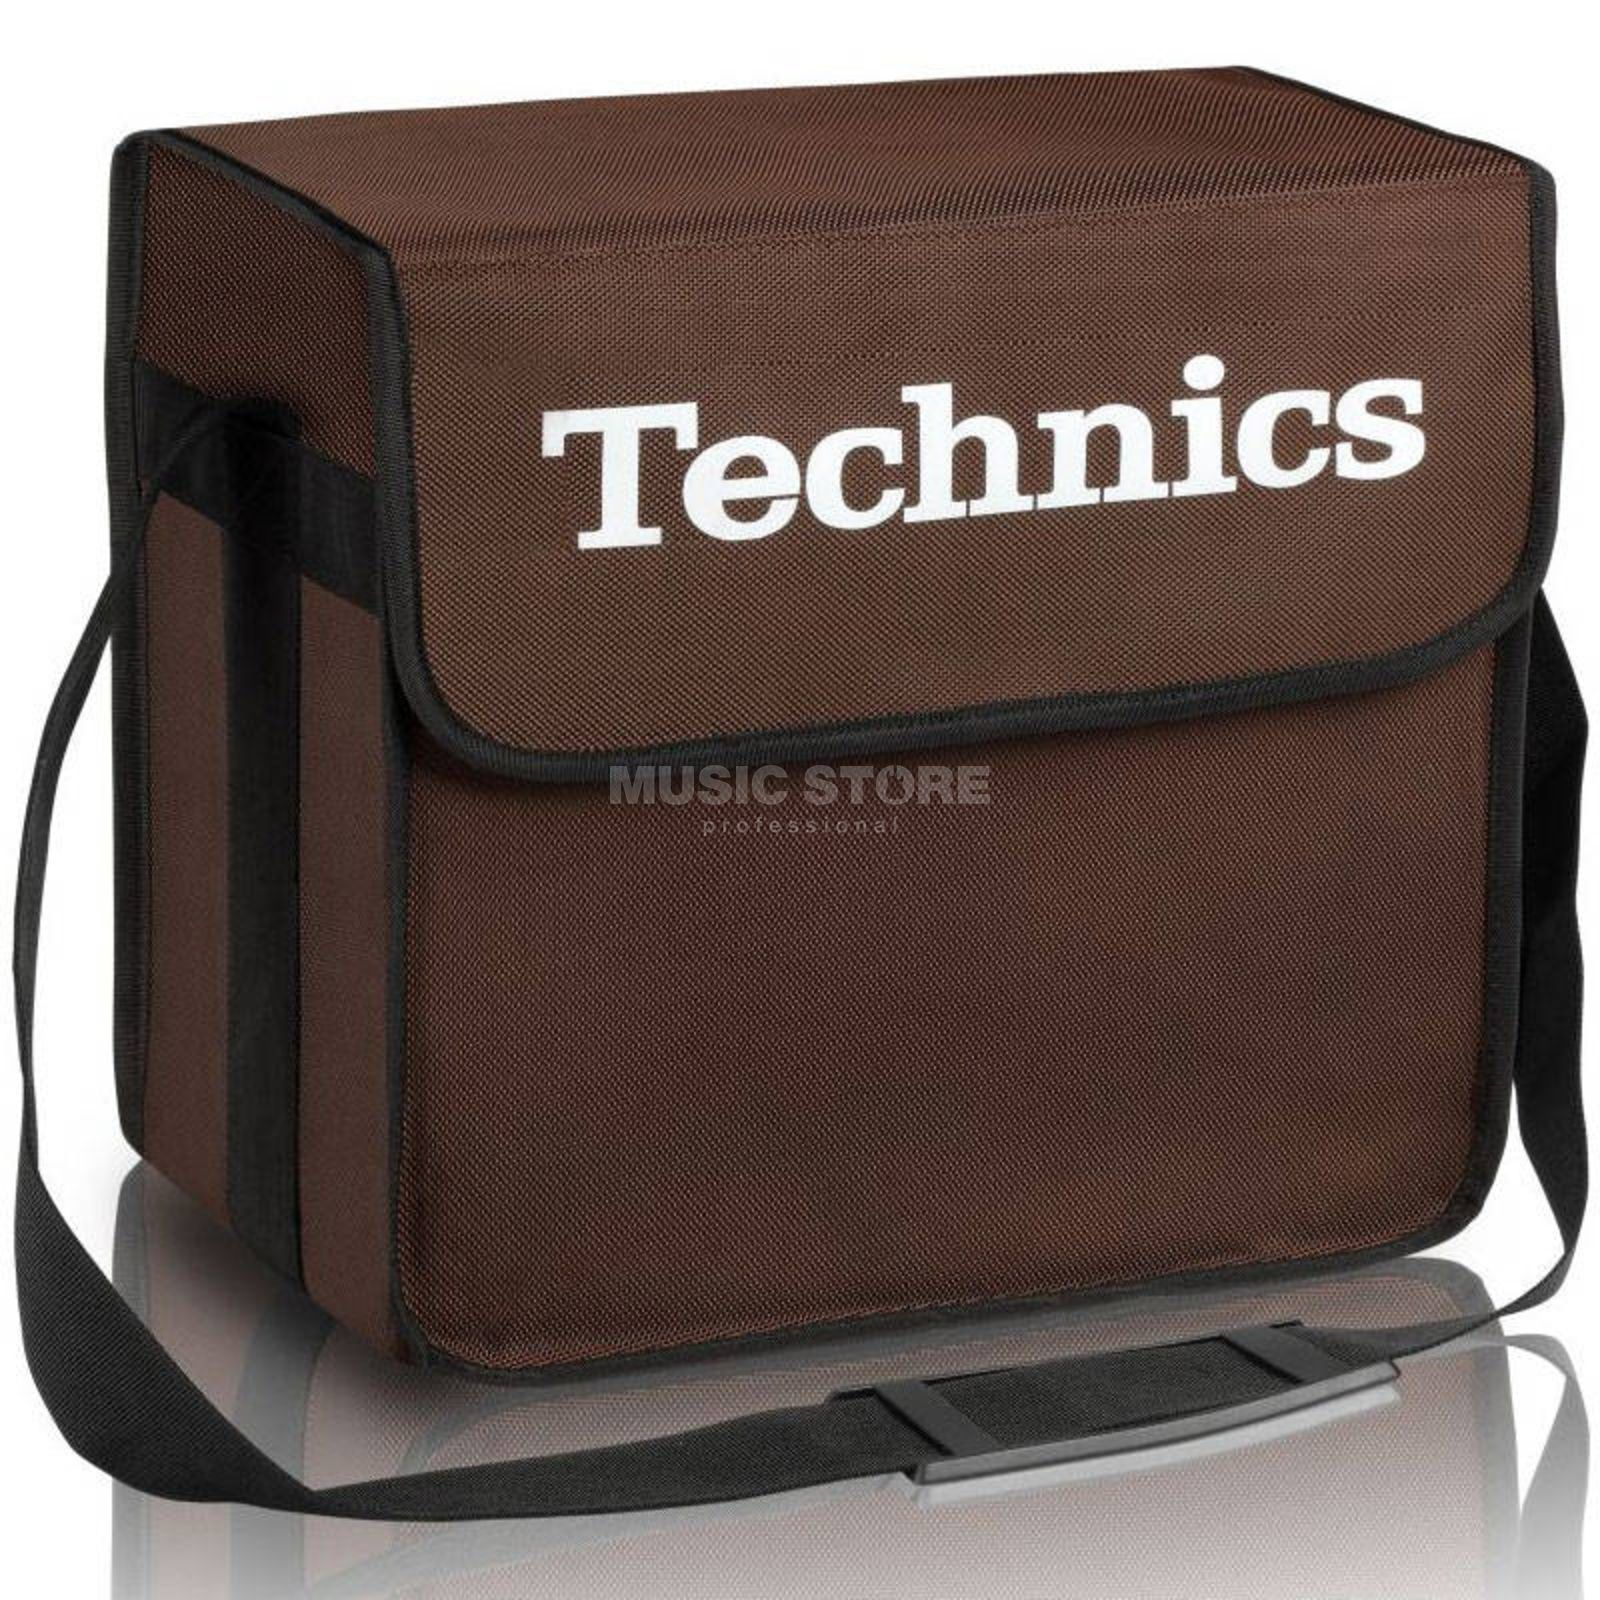 Technics DJ-Bag braun Product Image